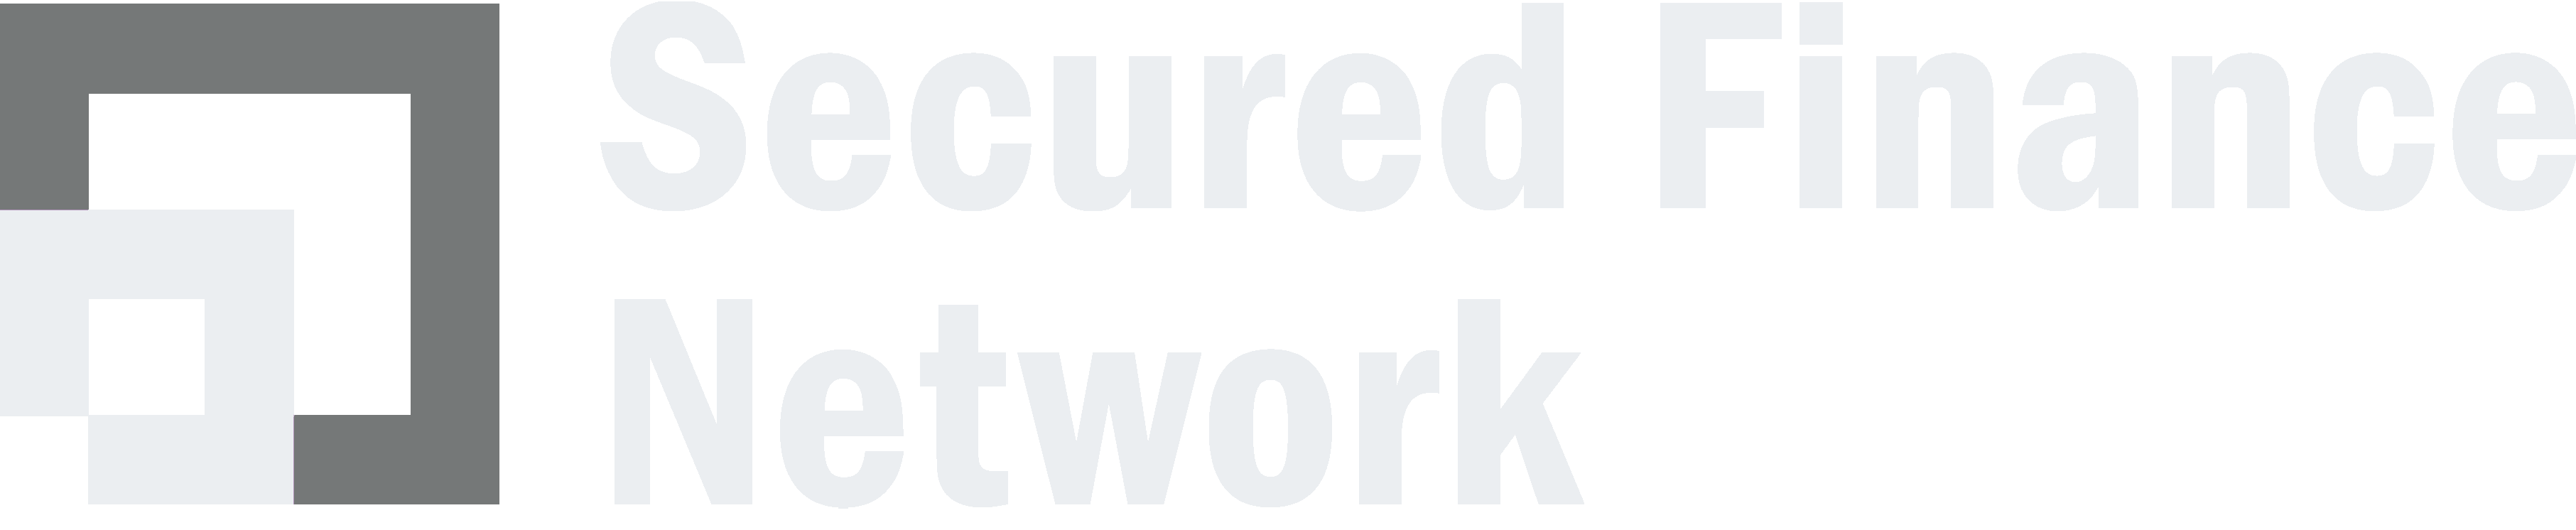 Secured Finance Network